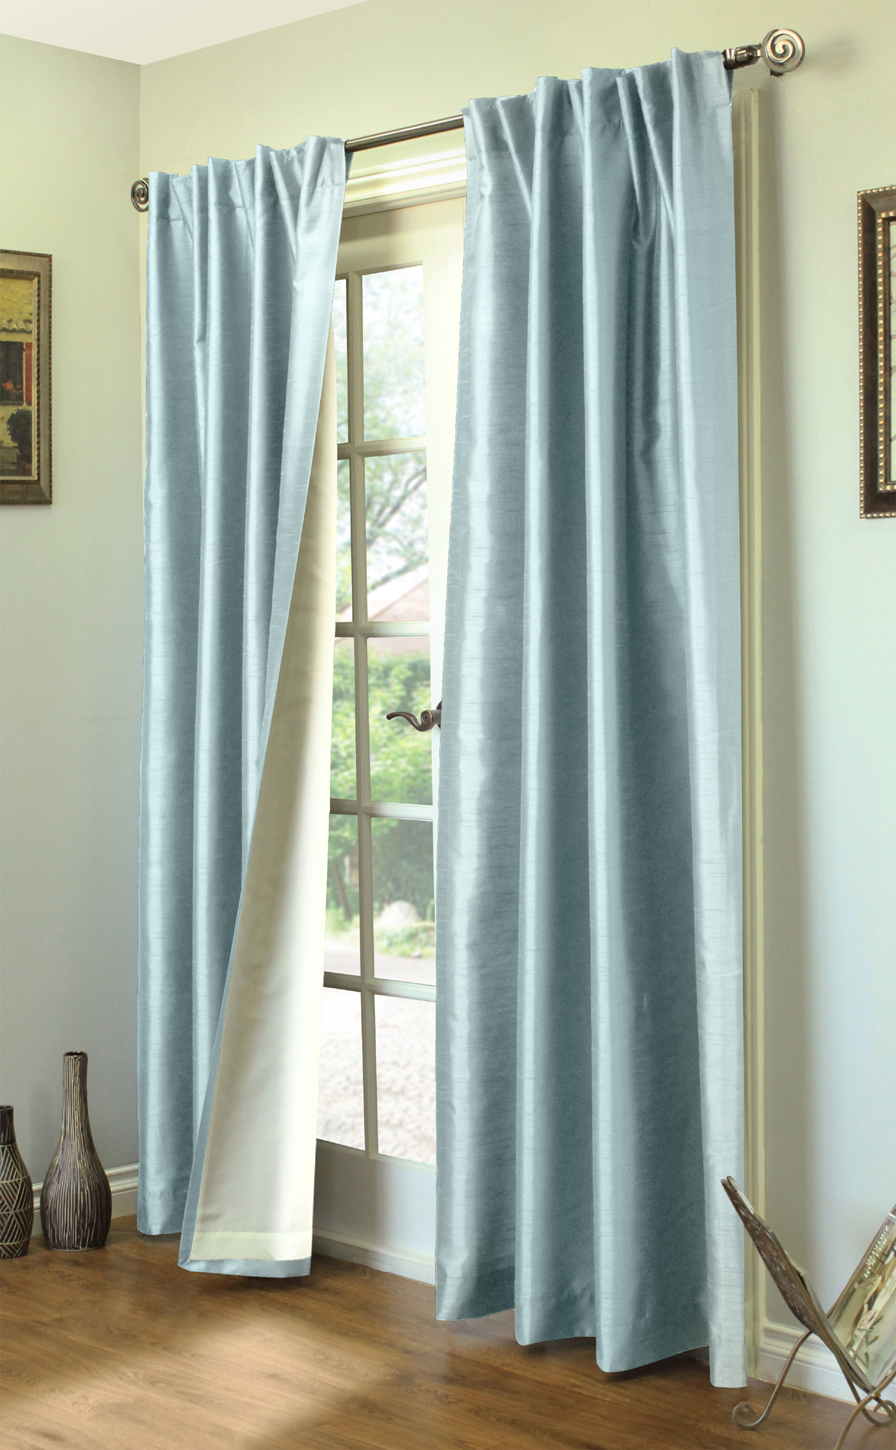 104 Inch Curtains Ming Lined Thermasilk Two Ways To Hang Curtain Panels Pair